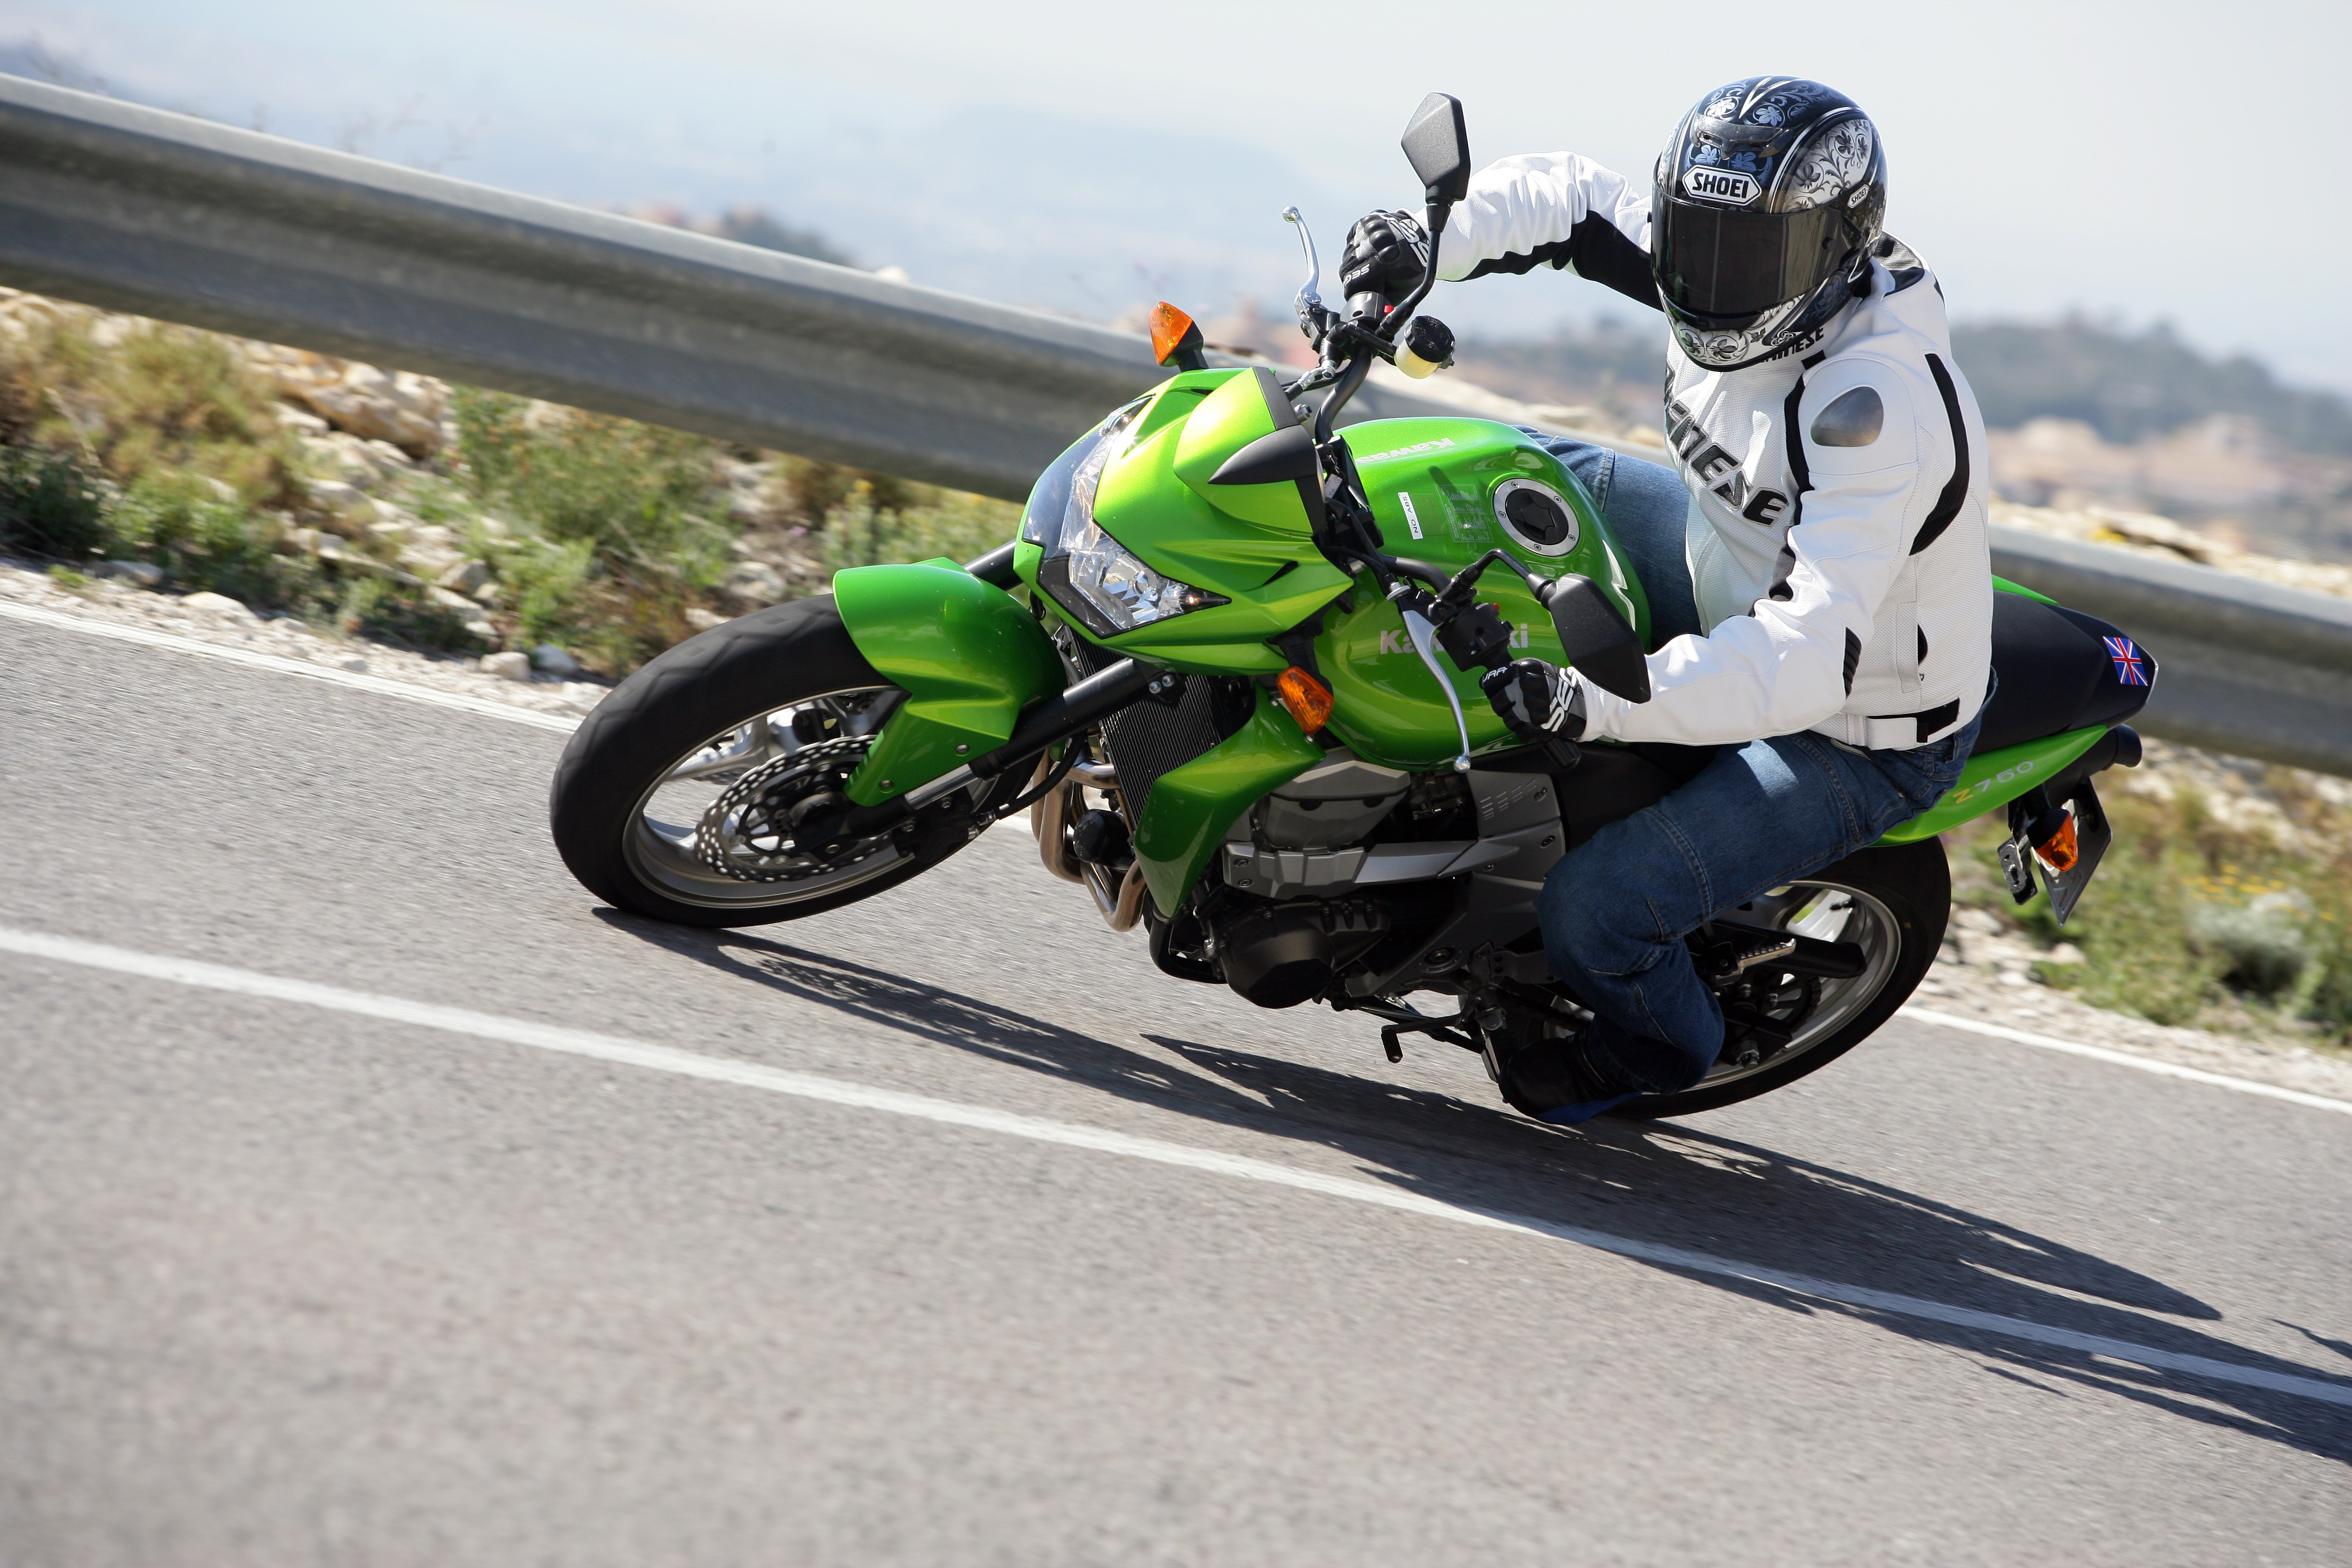 First Ride: 2007 Kawasaki Z750